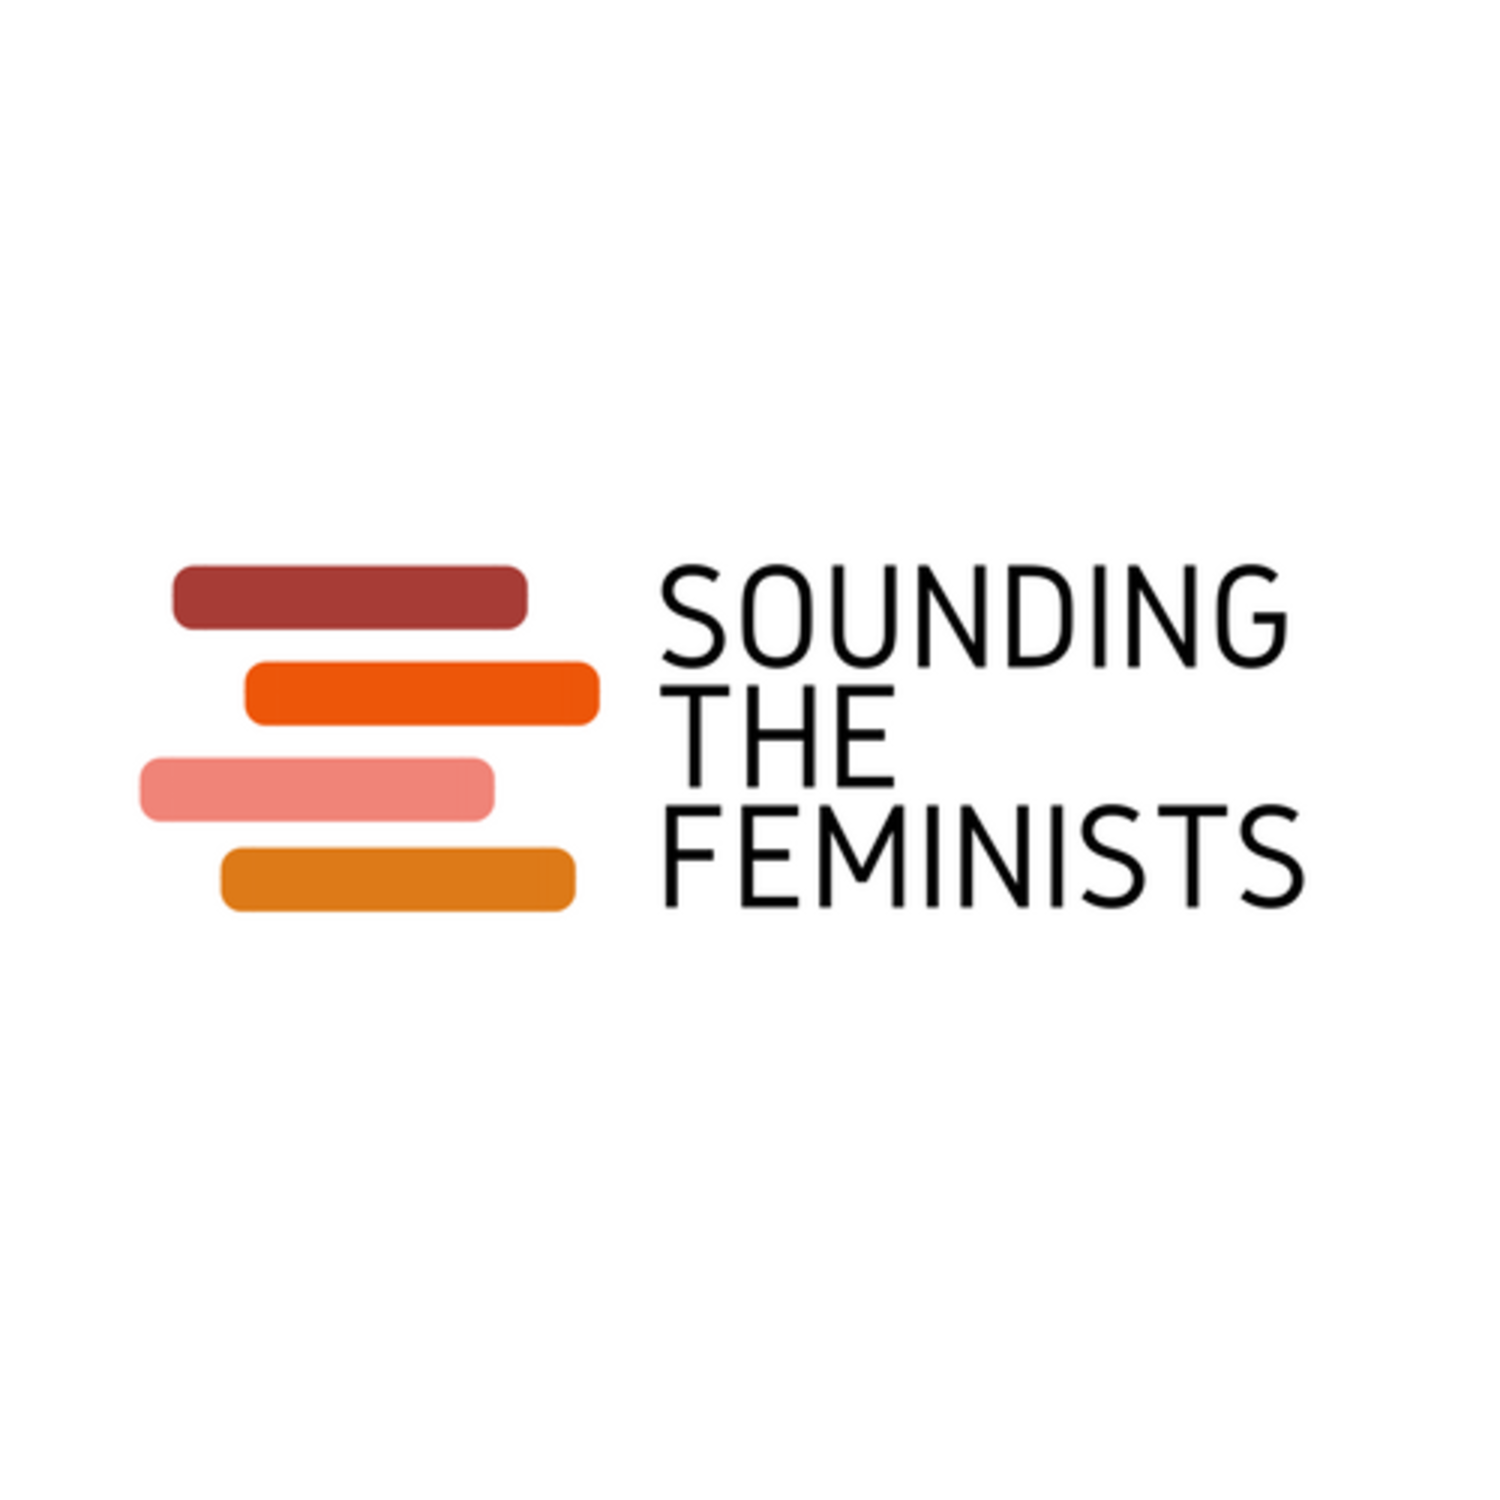 Sounding the Feminists